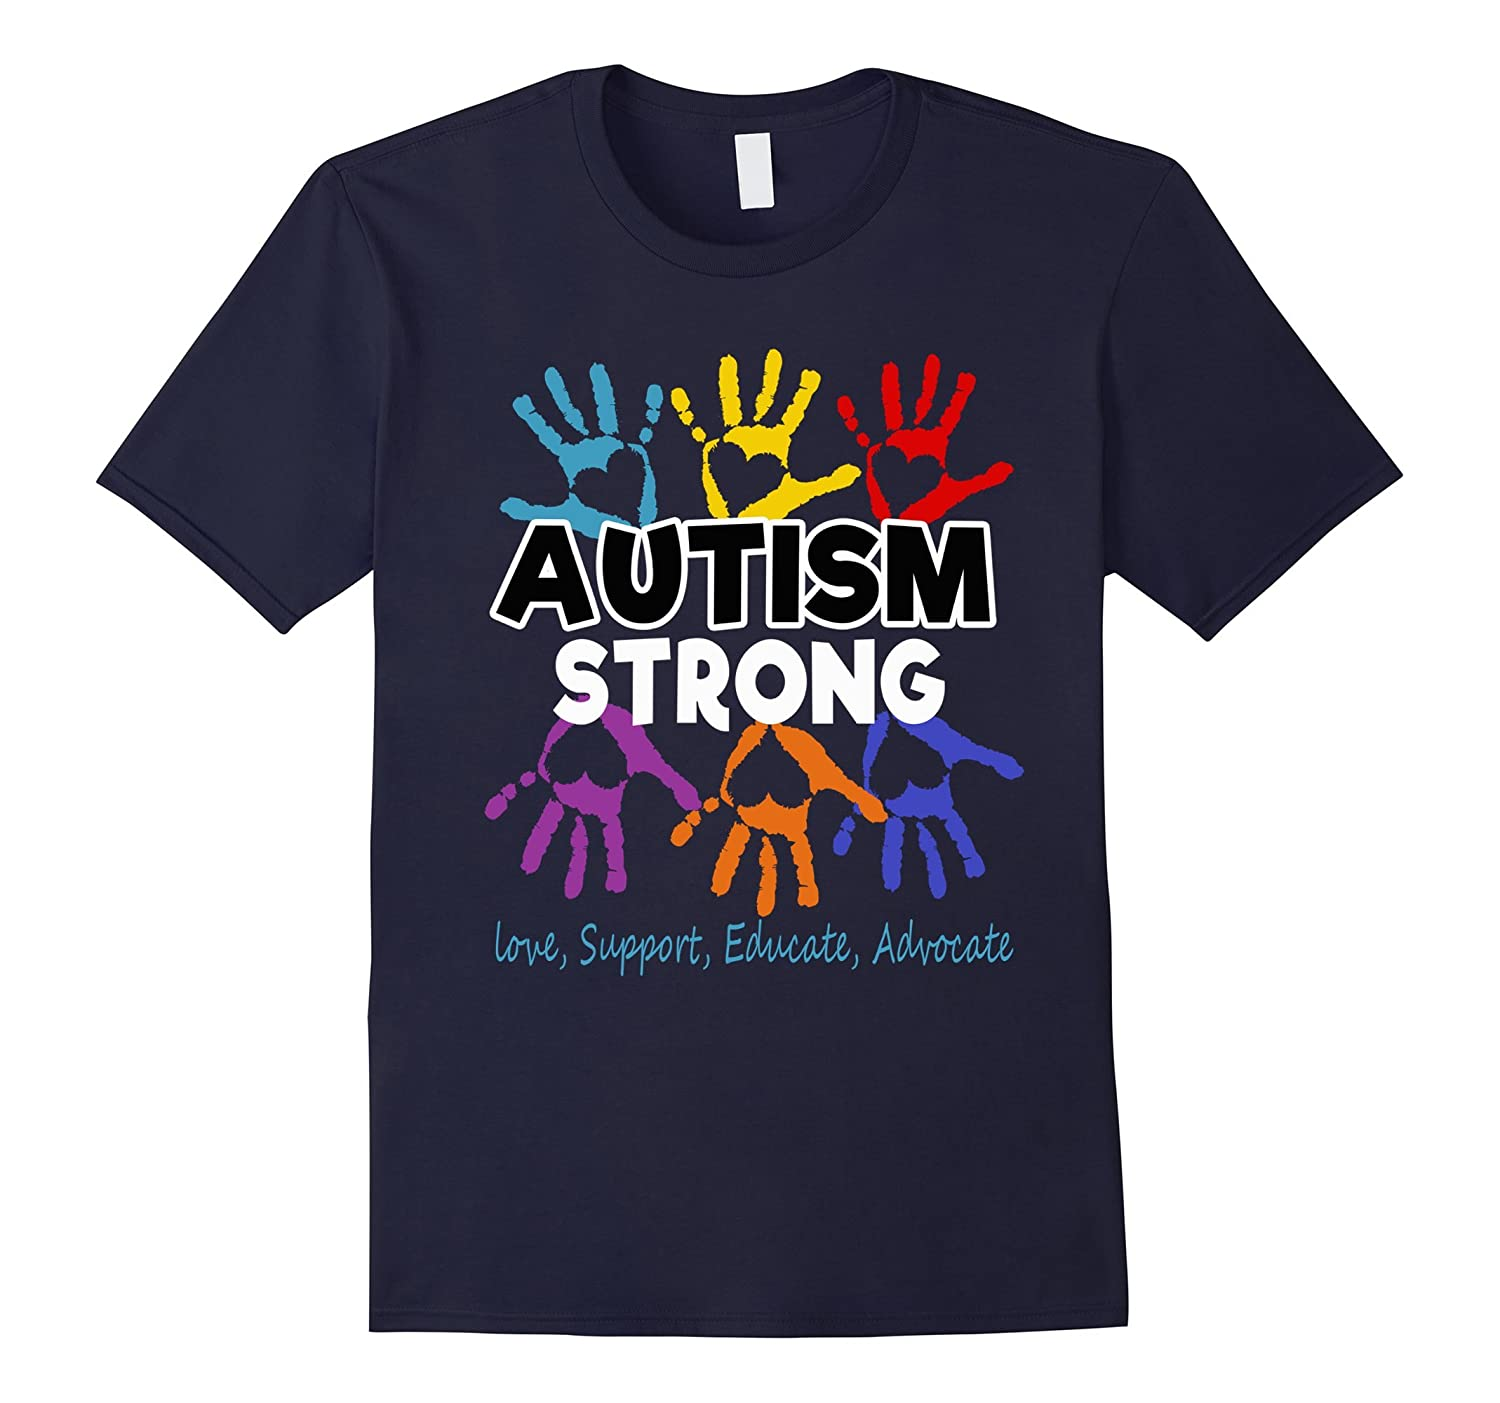 Autism Awareness T shirt For Mom / Dad/ Kid - Autism Strong-BN